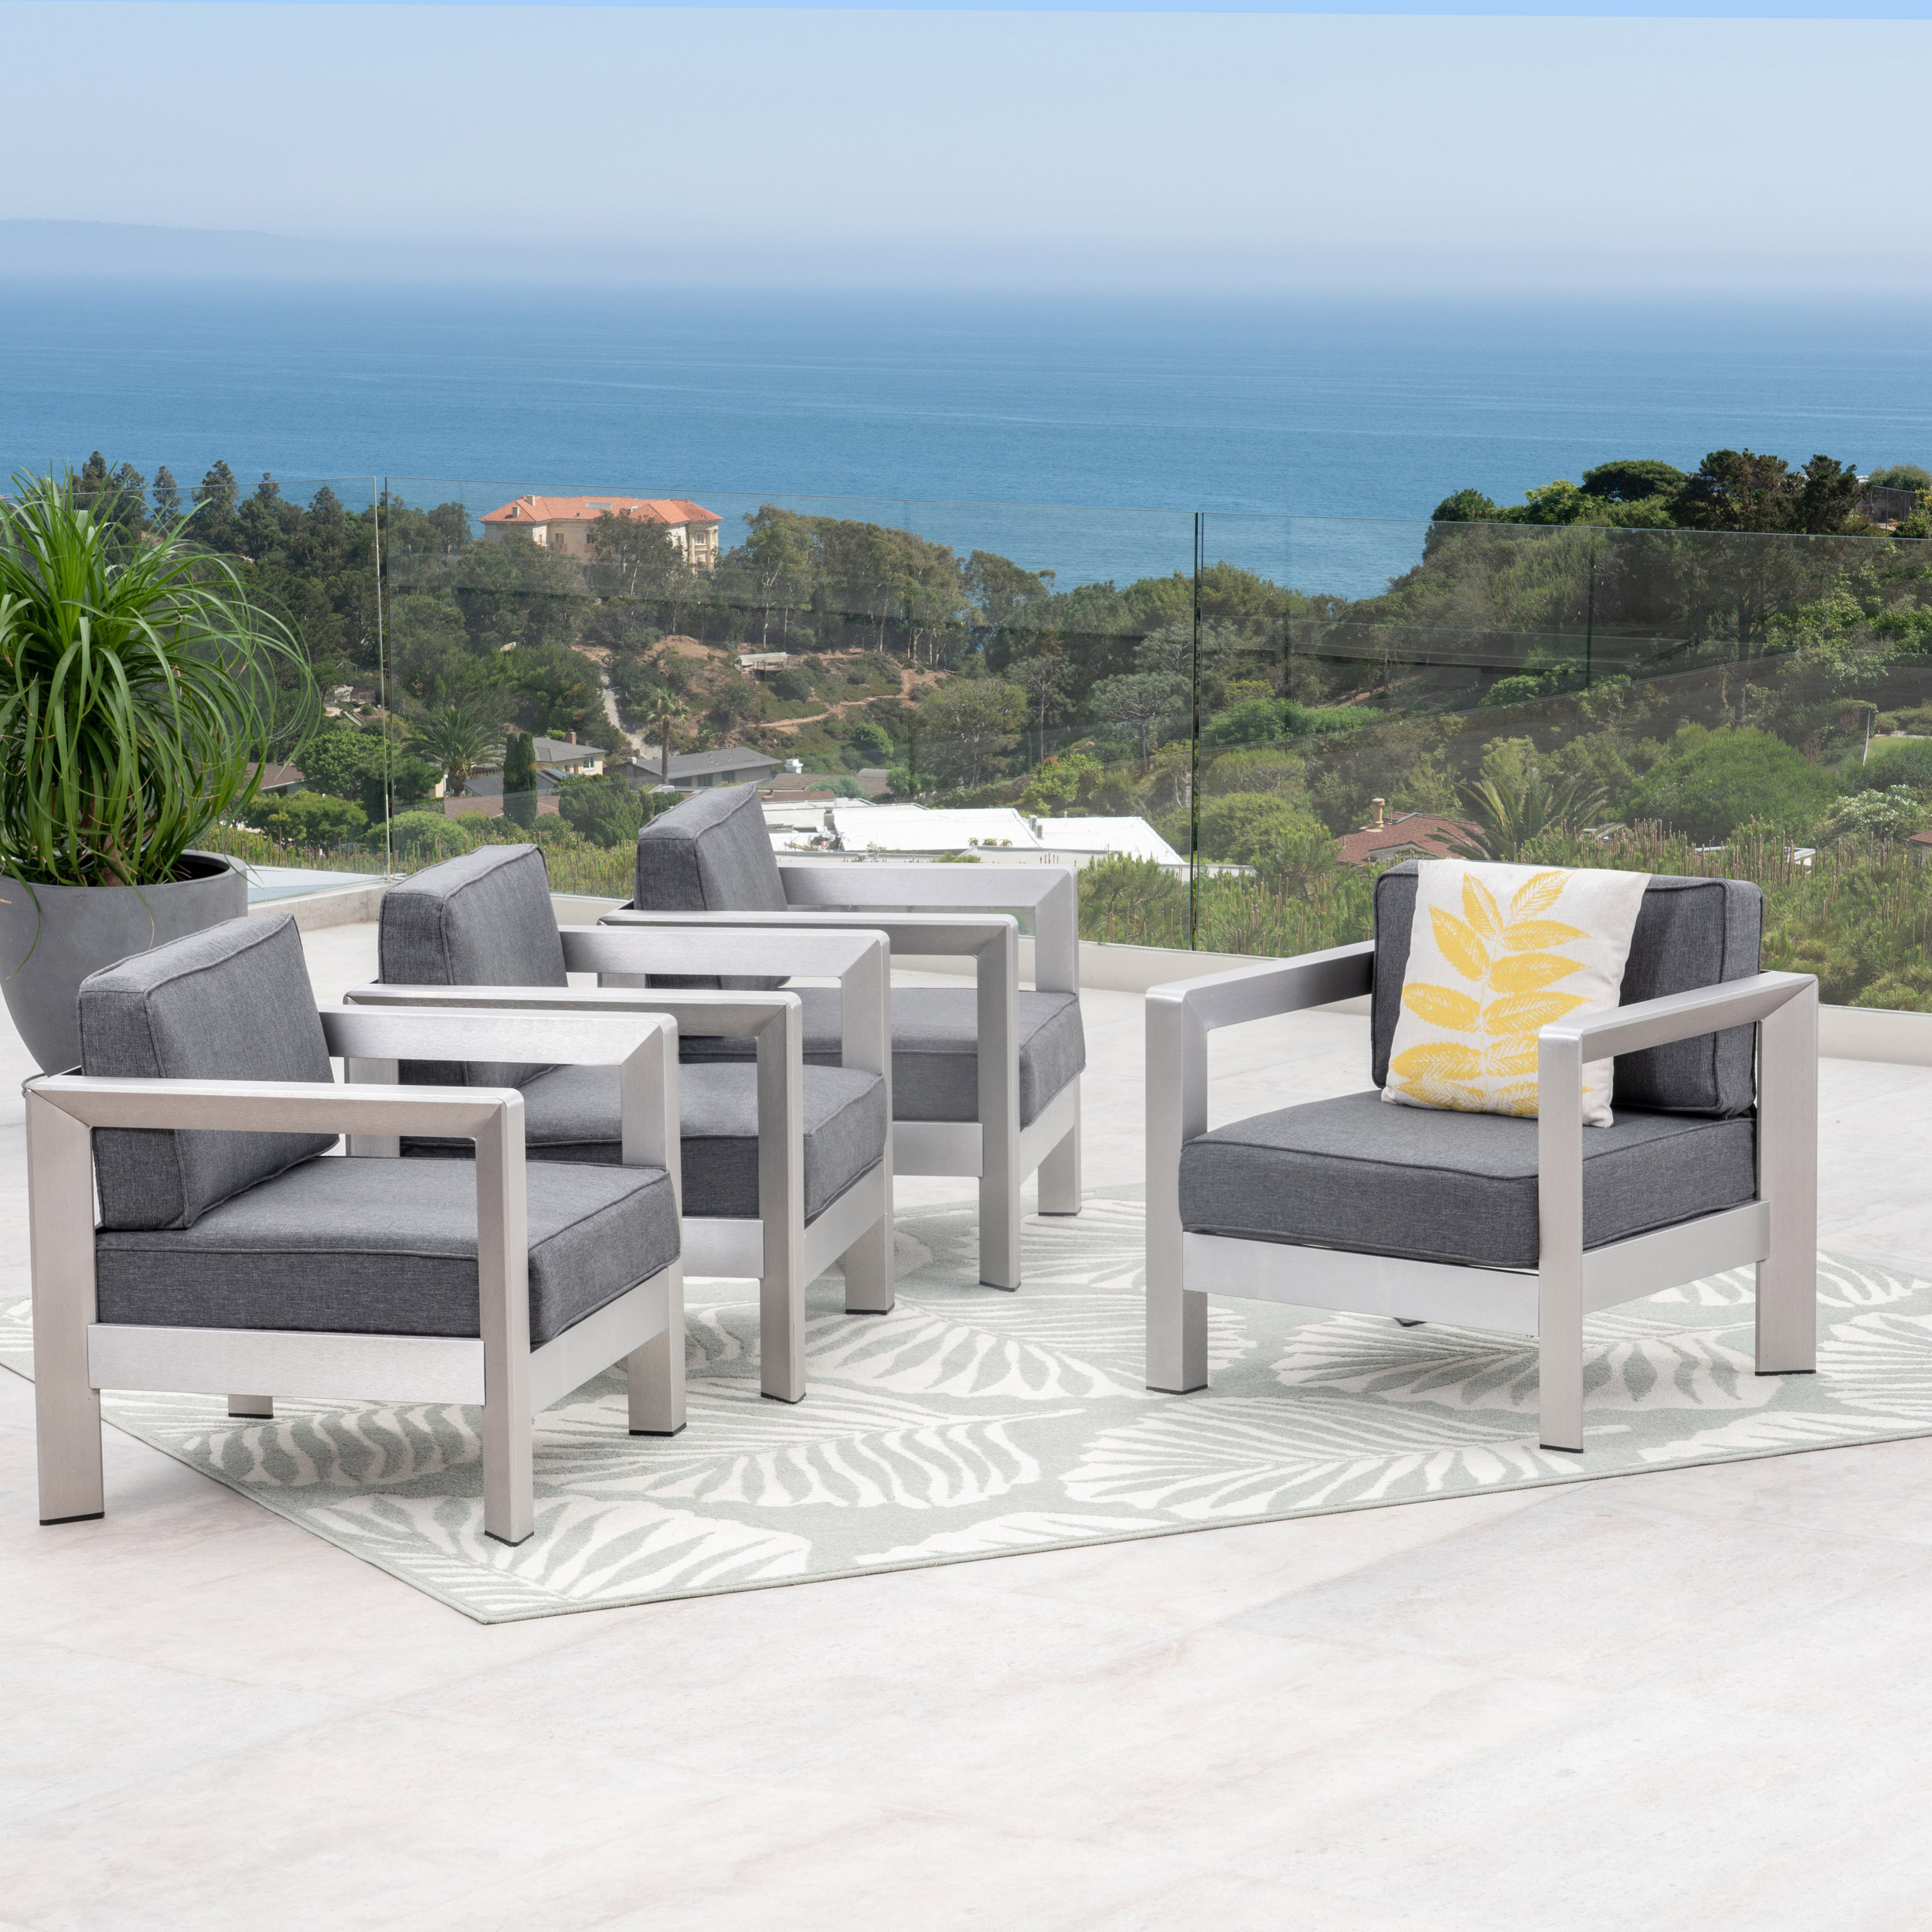 Darius Outdoor Aluminum Club Chairs, Set of 4, Sliver, Khaki